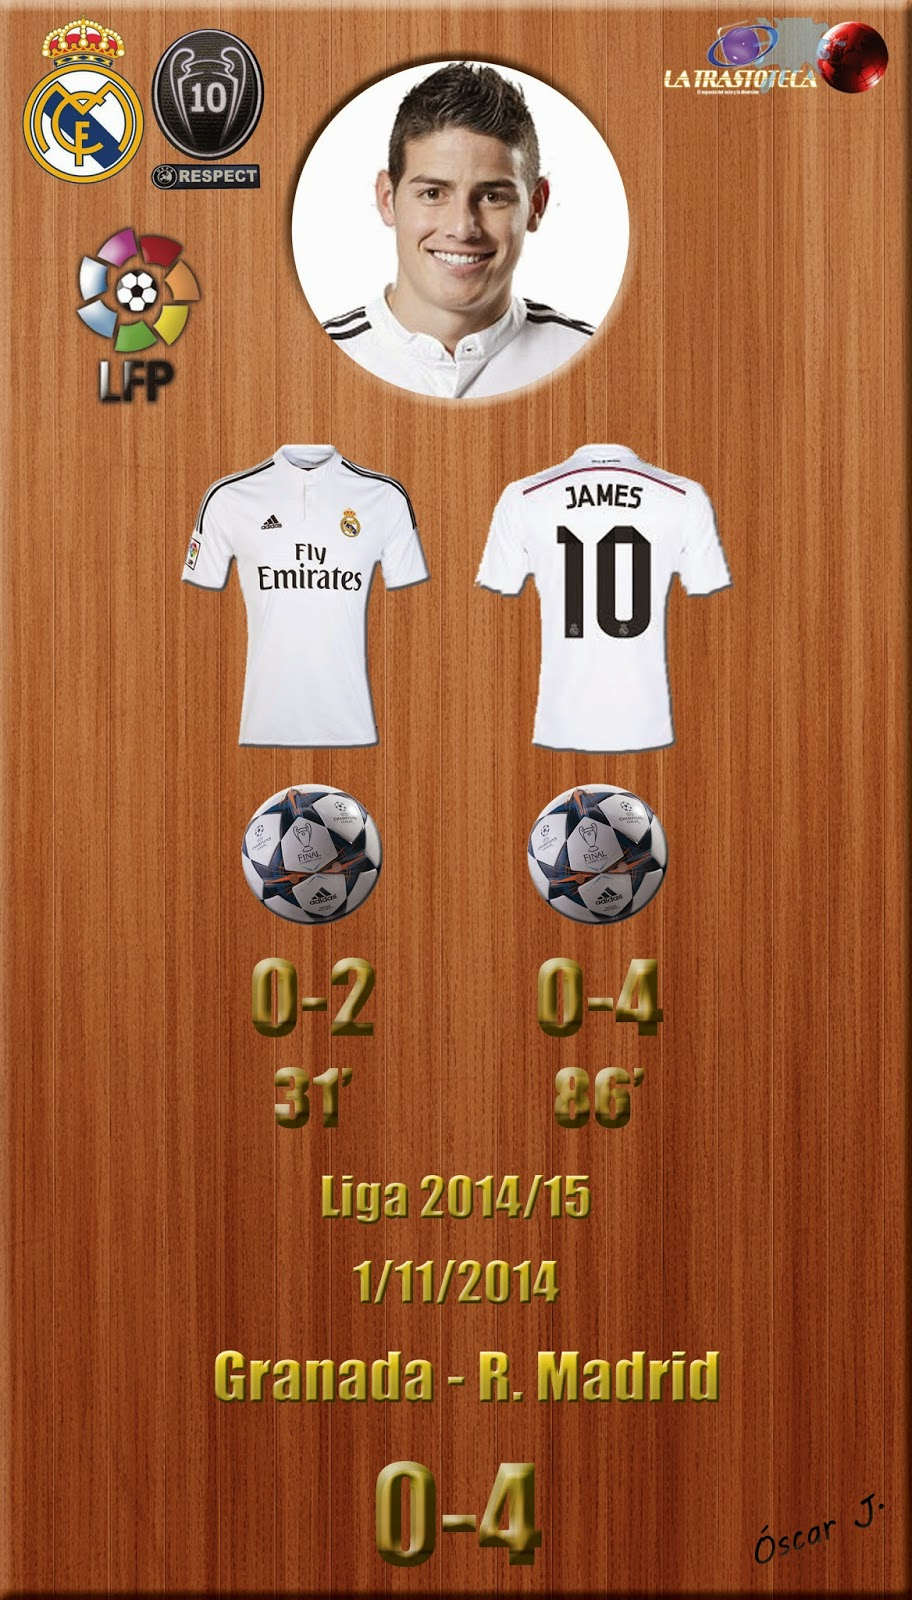 James - (doblete) - Granada 0-4 Real Madrid - Liga 2014/15 - (1/11/2014)